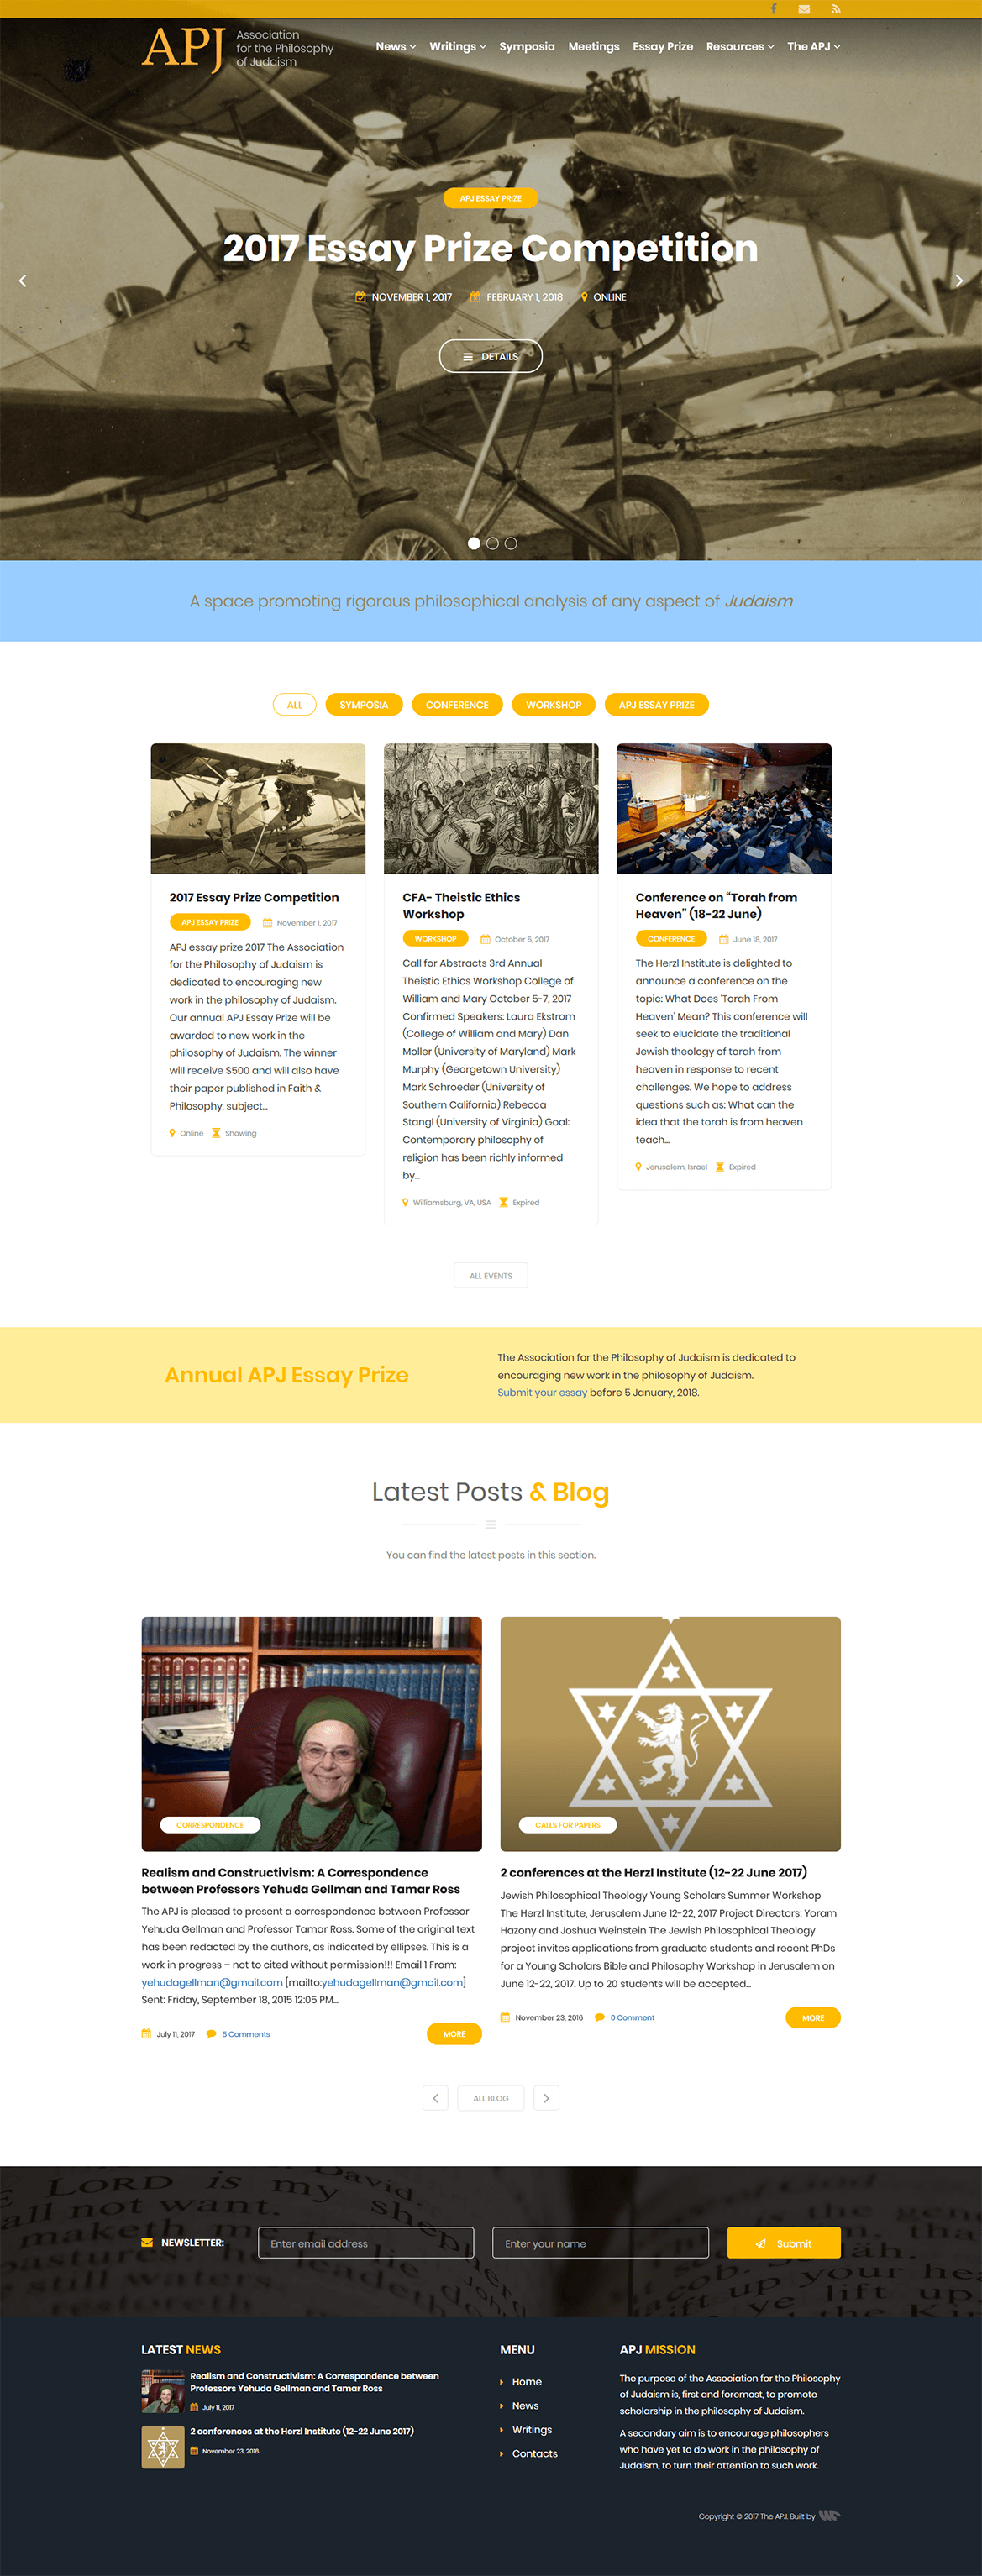 Non-profit philosophers association website